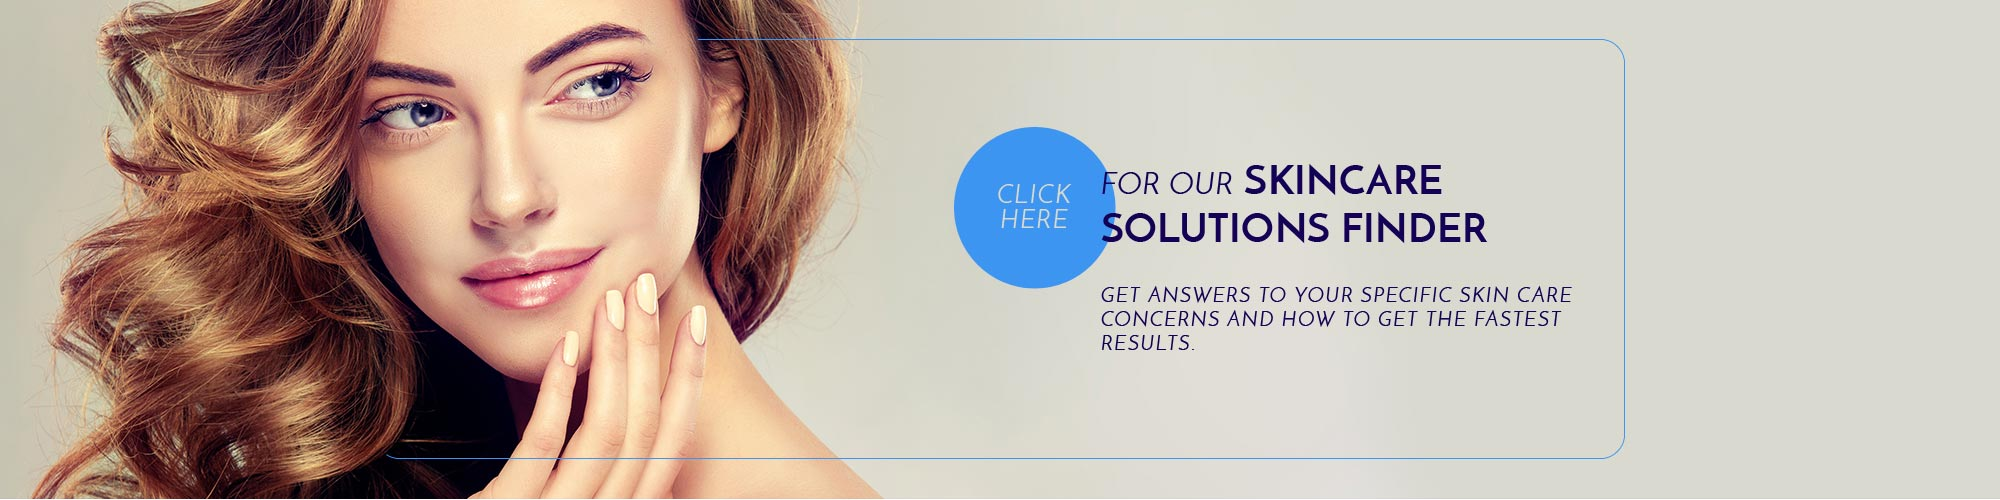 for our SKINCARE SOLUTIONS FINDER